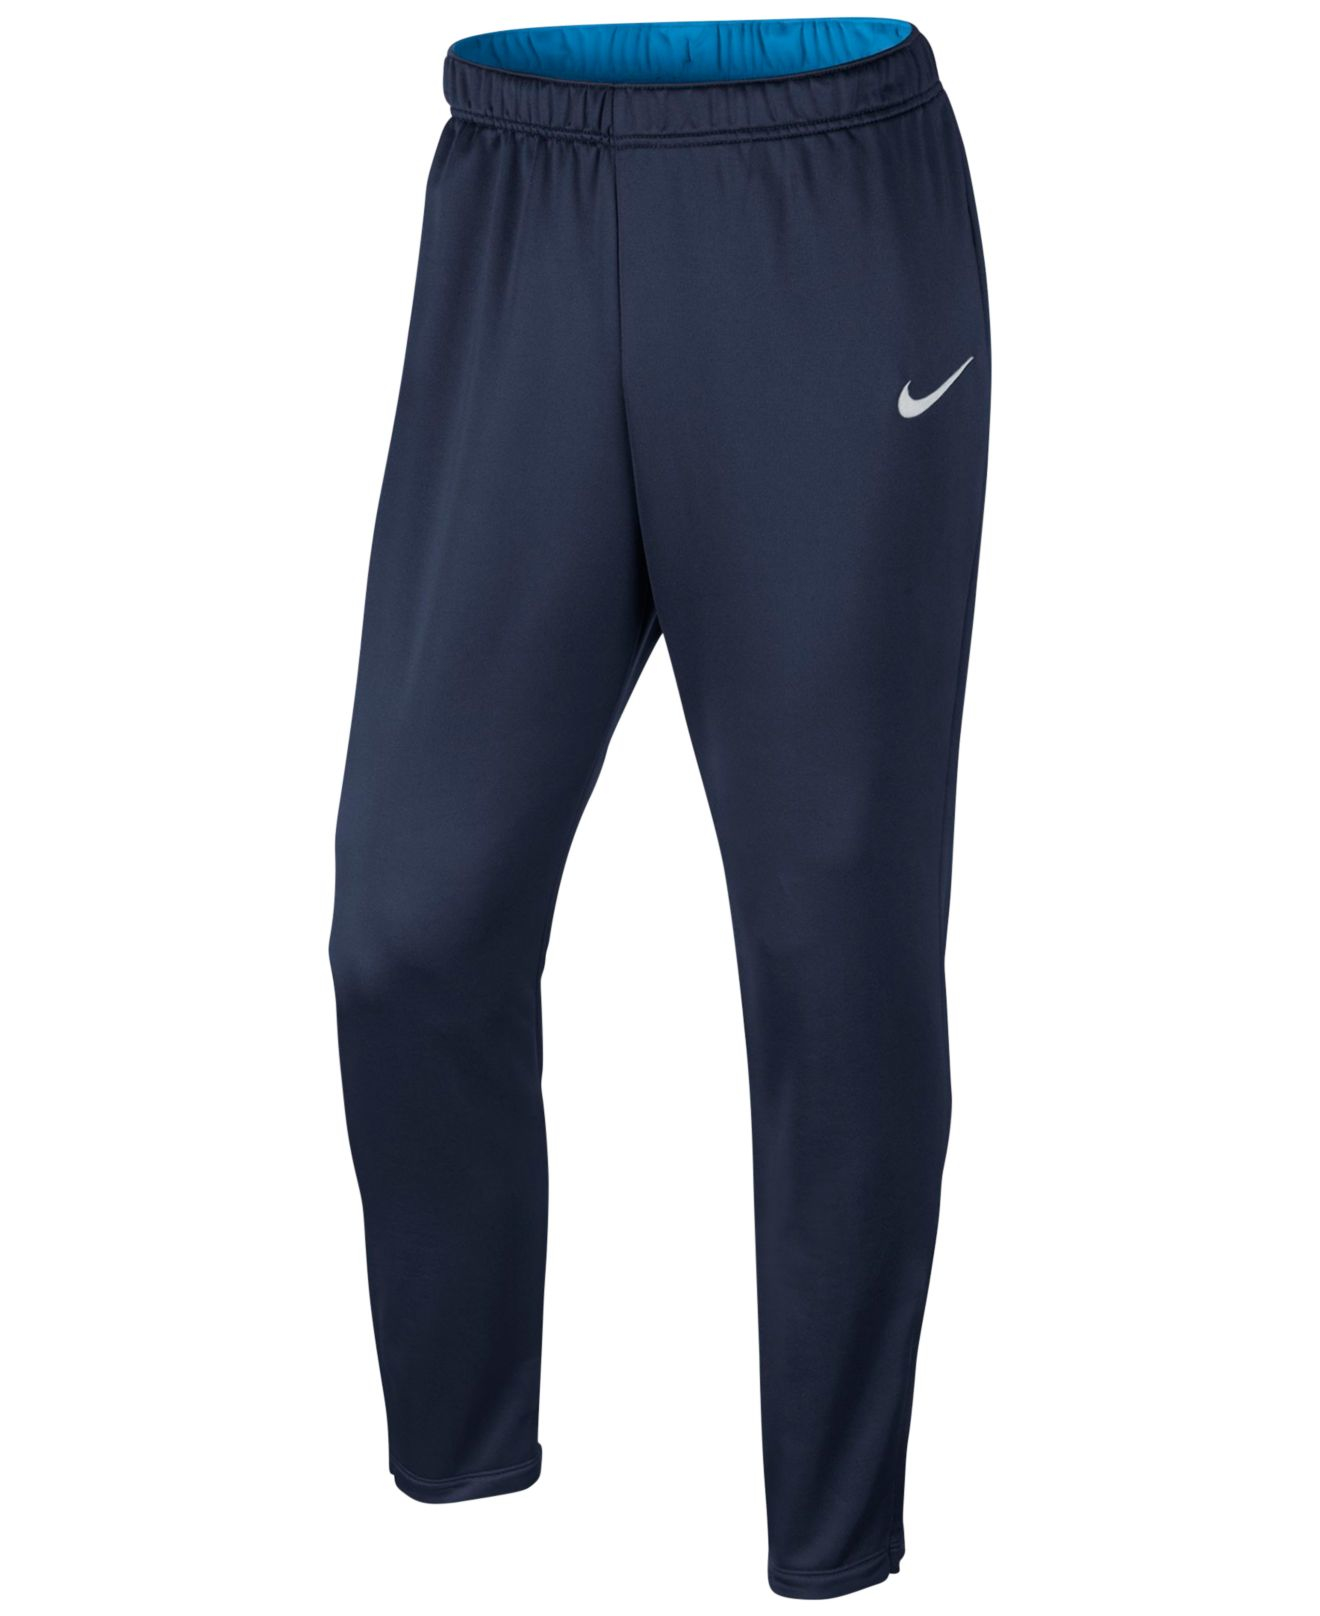 Nike Men's Academy Slim-fit Soccer Tech Pant in Blue for ...